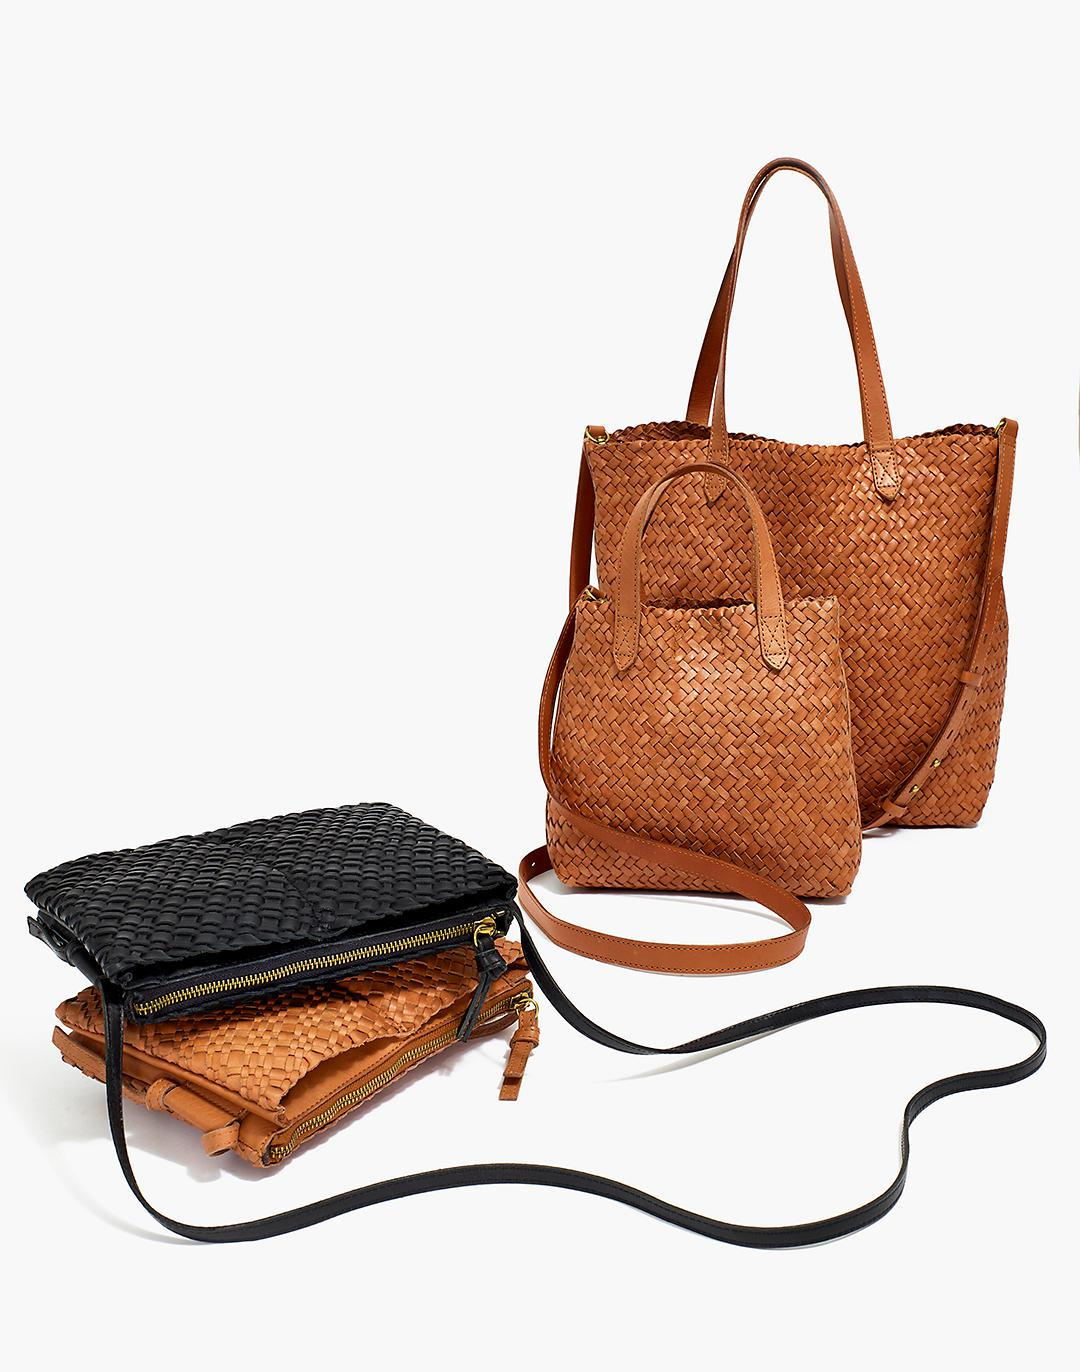 The Knotted Crossbody Bag in Woven Leather 2